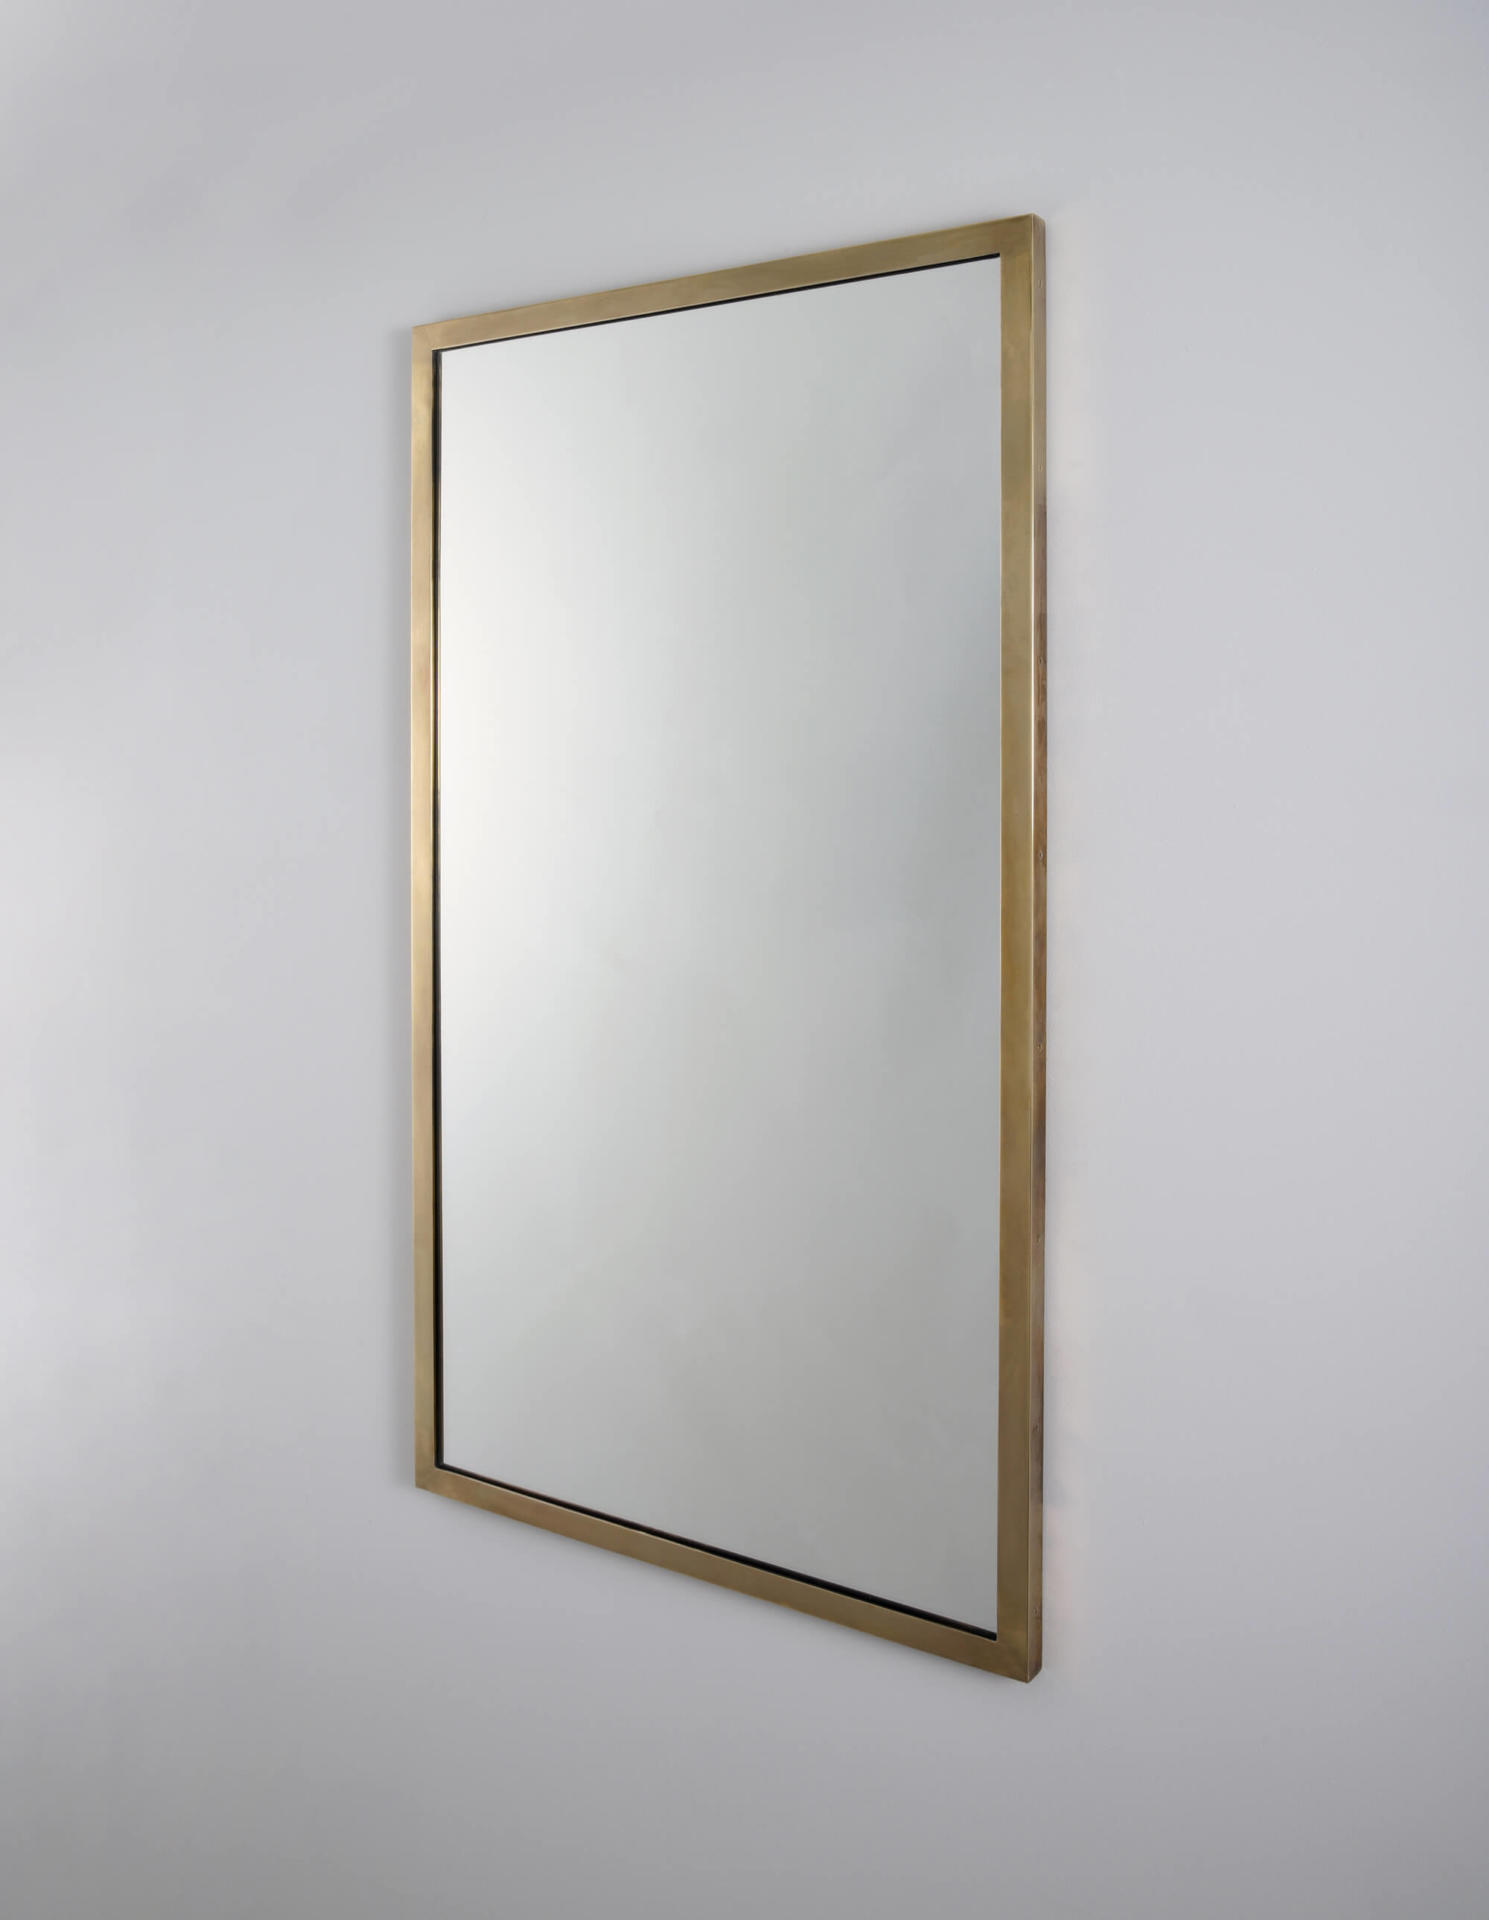 The Salon, a brass framed mirror by Collier Webb - ideal for interior design projects